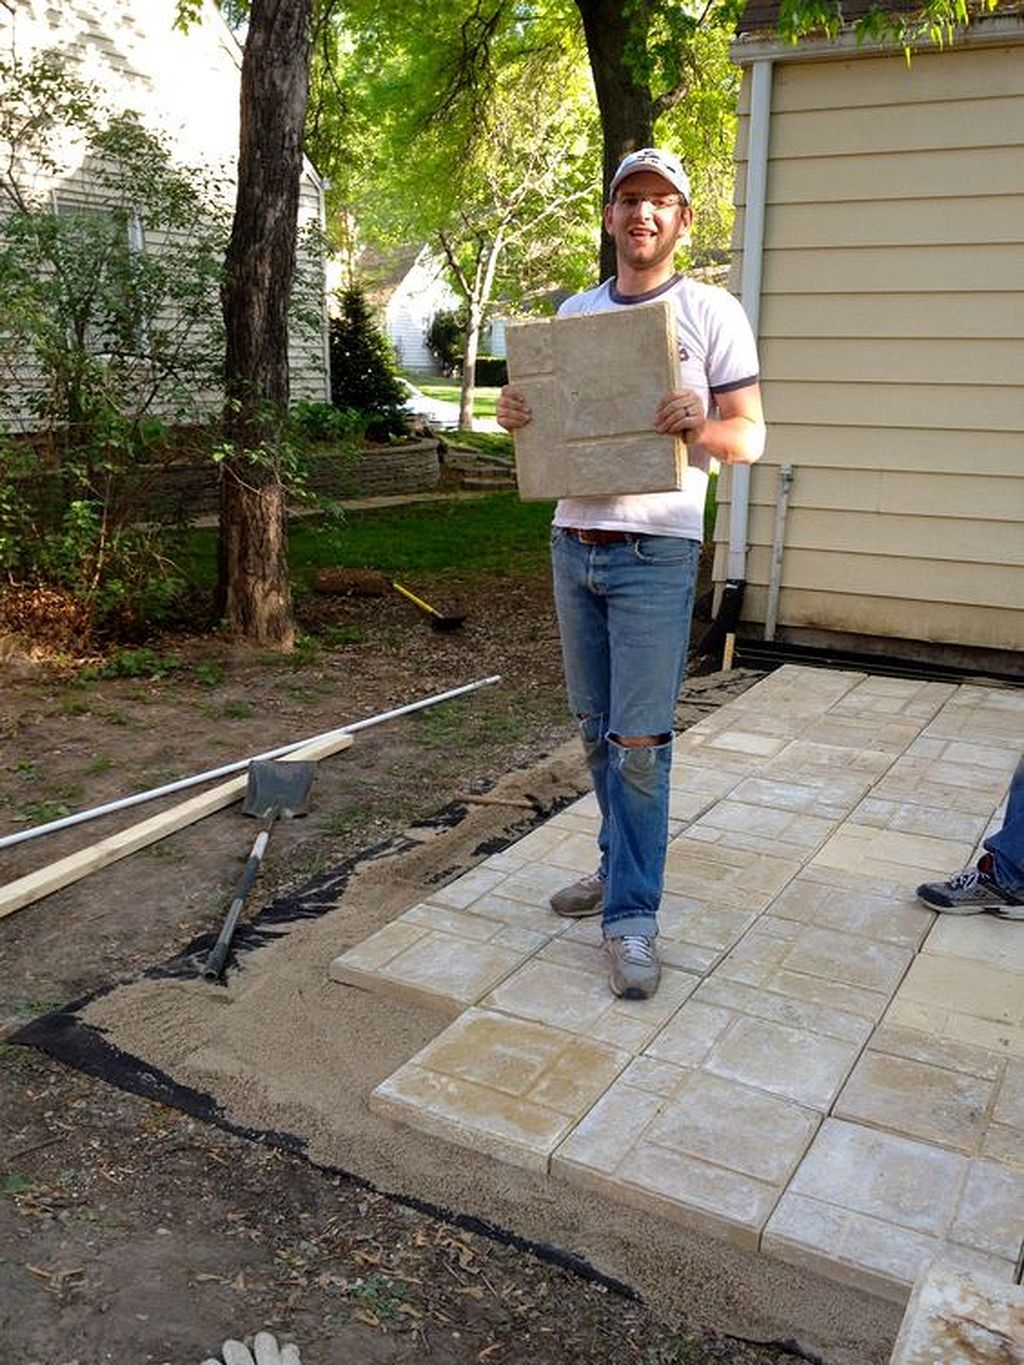 Make A Small Backyard Beautiful With Simple Paver Patio Ideas Learn How To Build It Yourself Diy And Get Your Brick Pavers Patterns Designs Cost